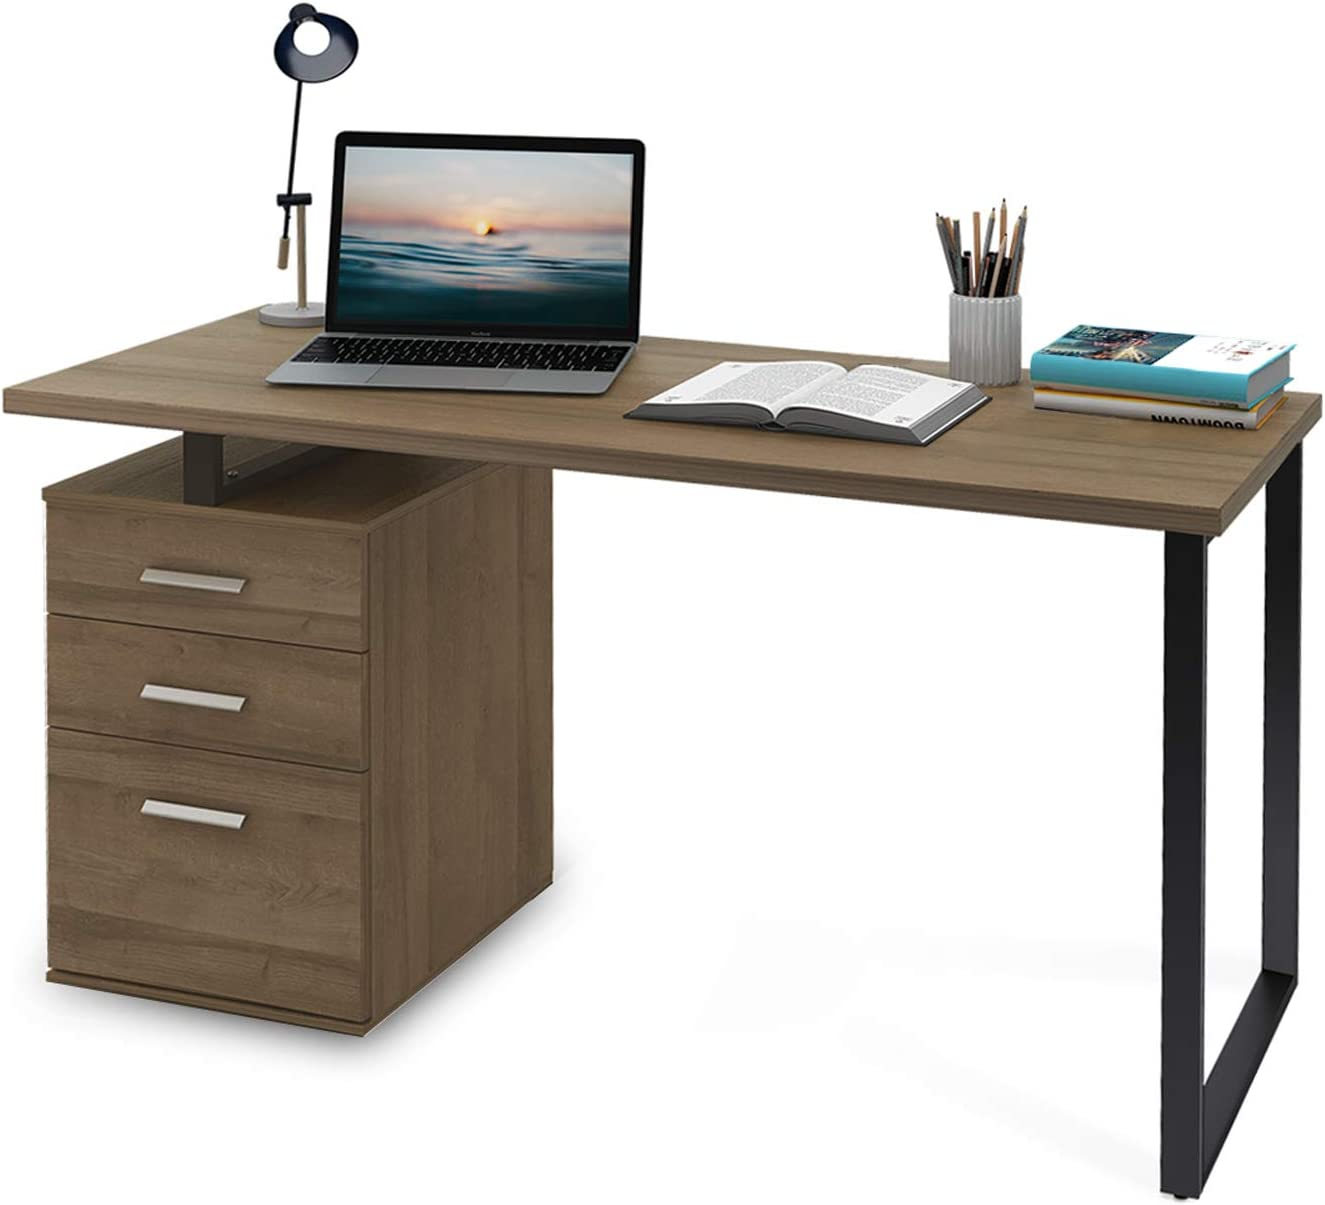 Amazon.com: DEVAISE Computer Desk with Drawer, 55 inch Home Office